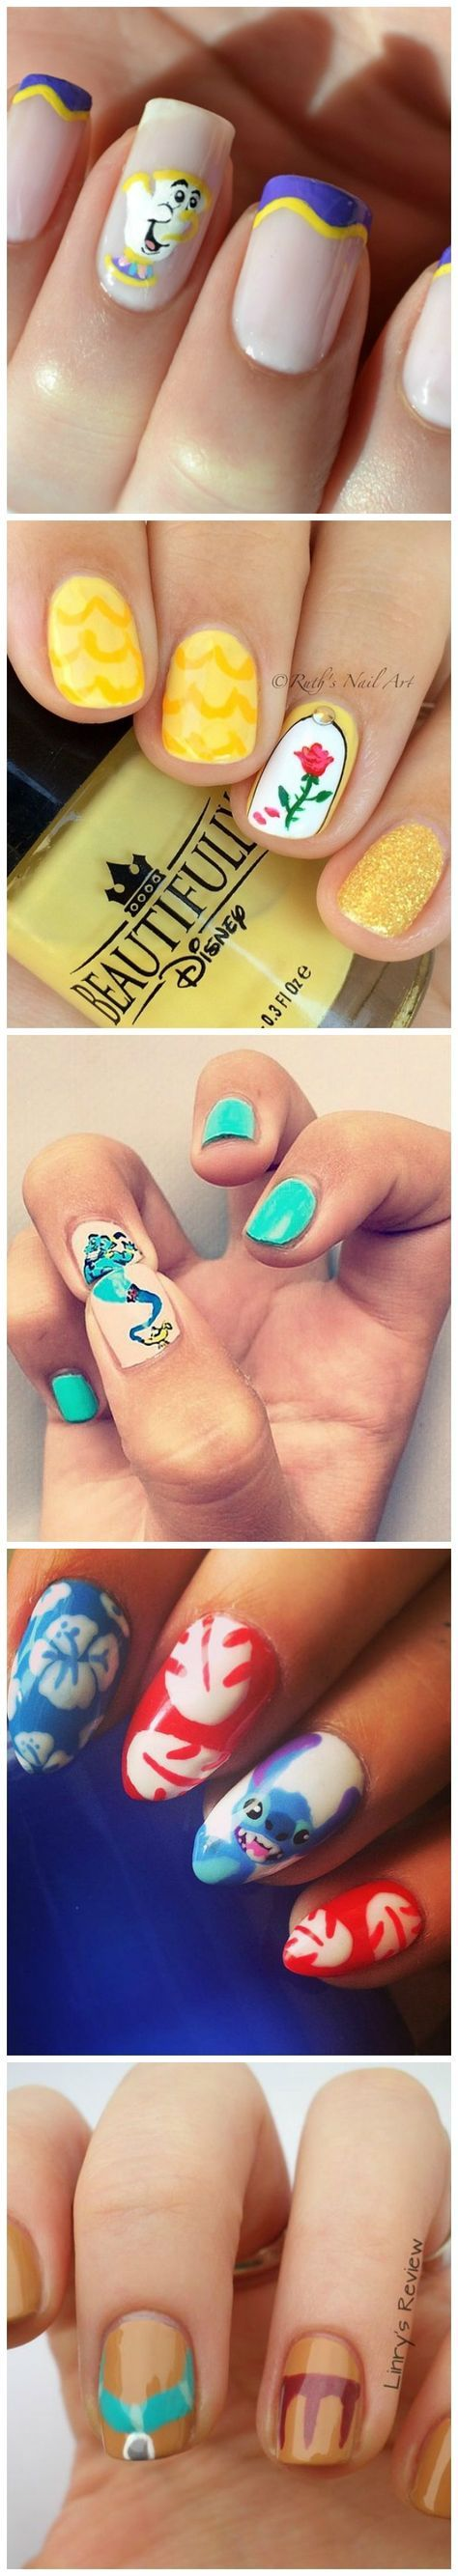 Inside Out: Nail Art Designs | Movie, Printing and Free